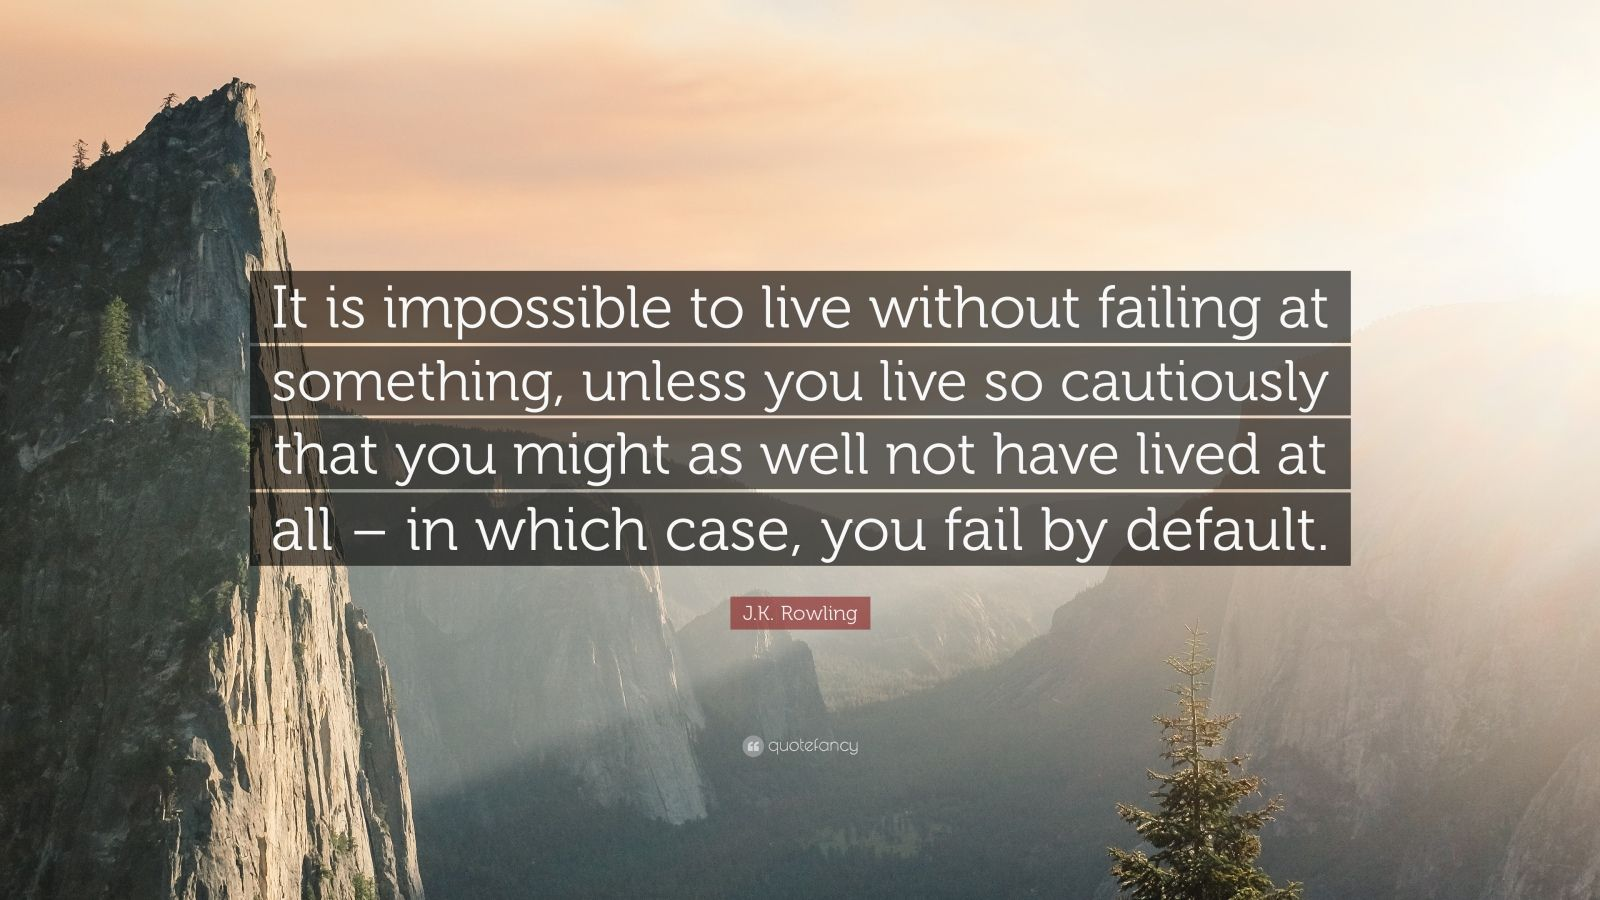 """J.K. Rowling Quote: """"It is impossible to live without failing at something, unless you live so cautiously that you might as well not have lived at all – in which case, you fail by default."""""""